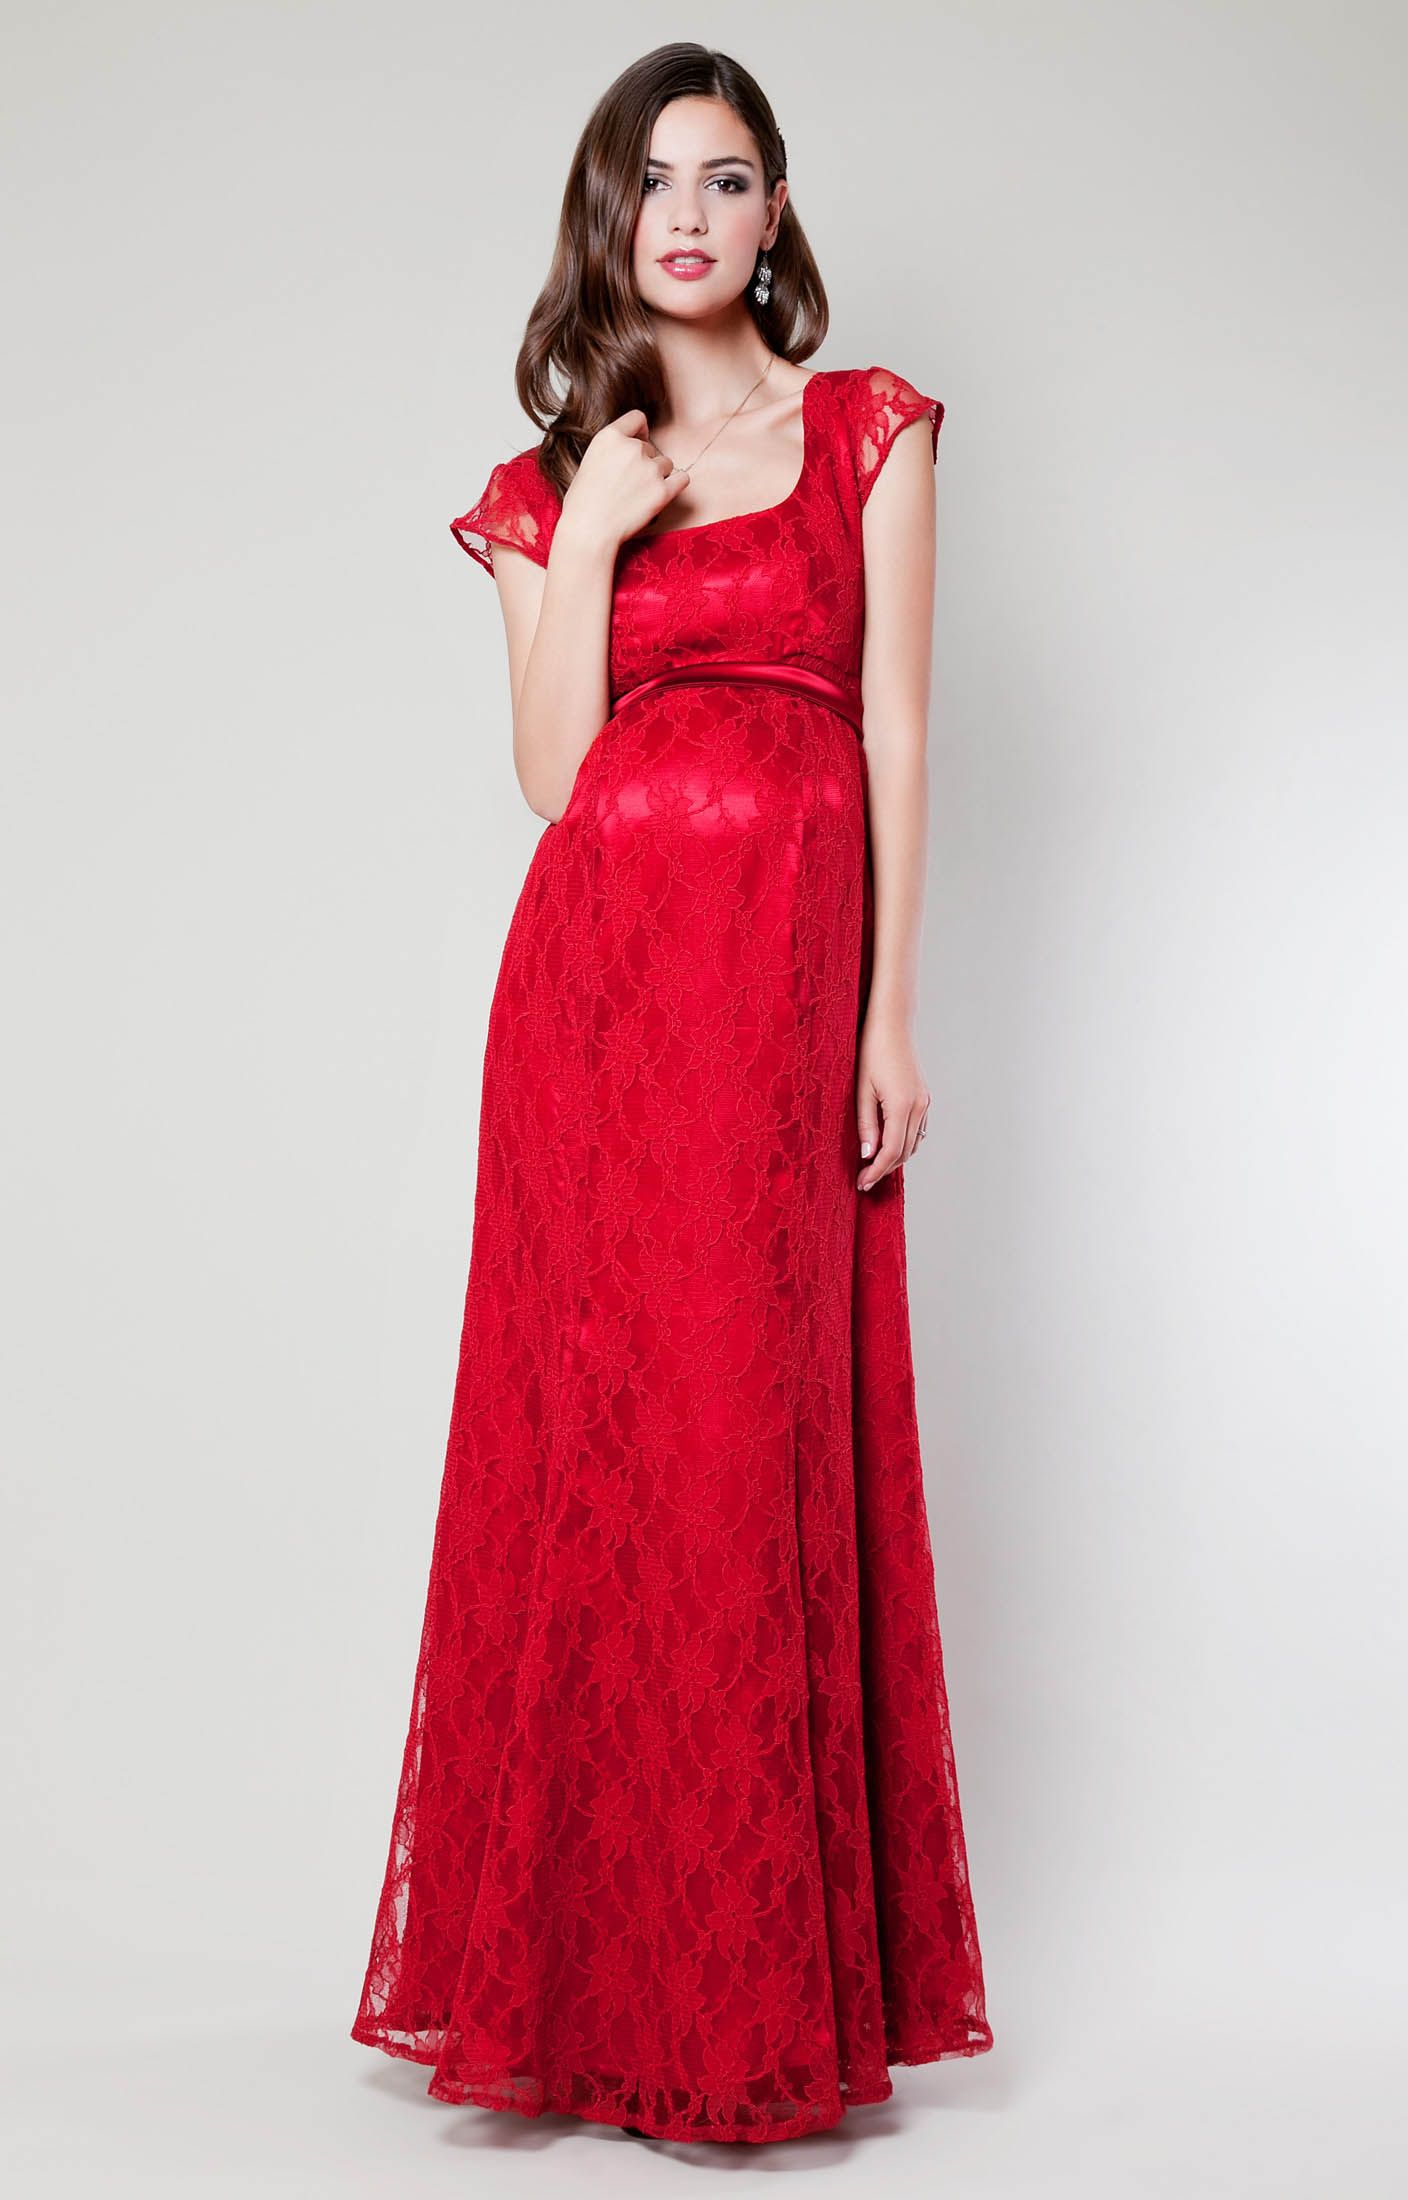 Paisley Bride Dresses Mother of the Macy's,Eva Prom Dresses,